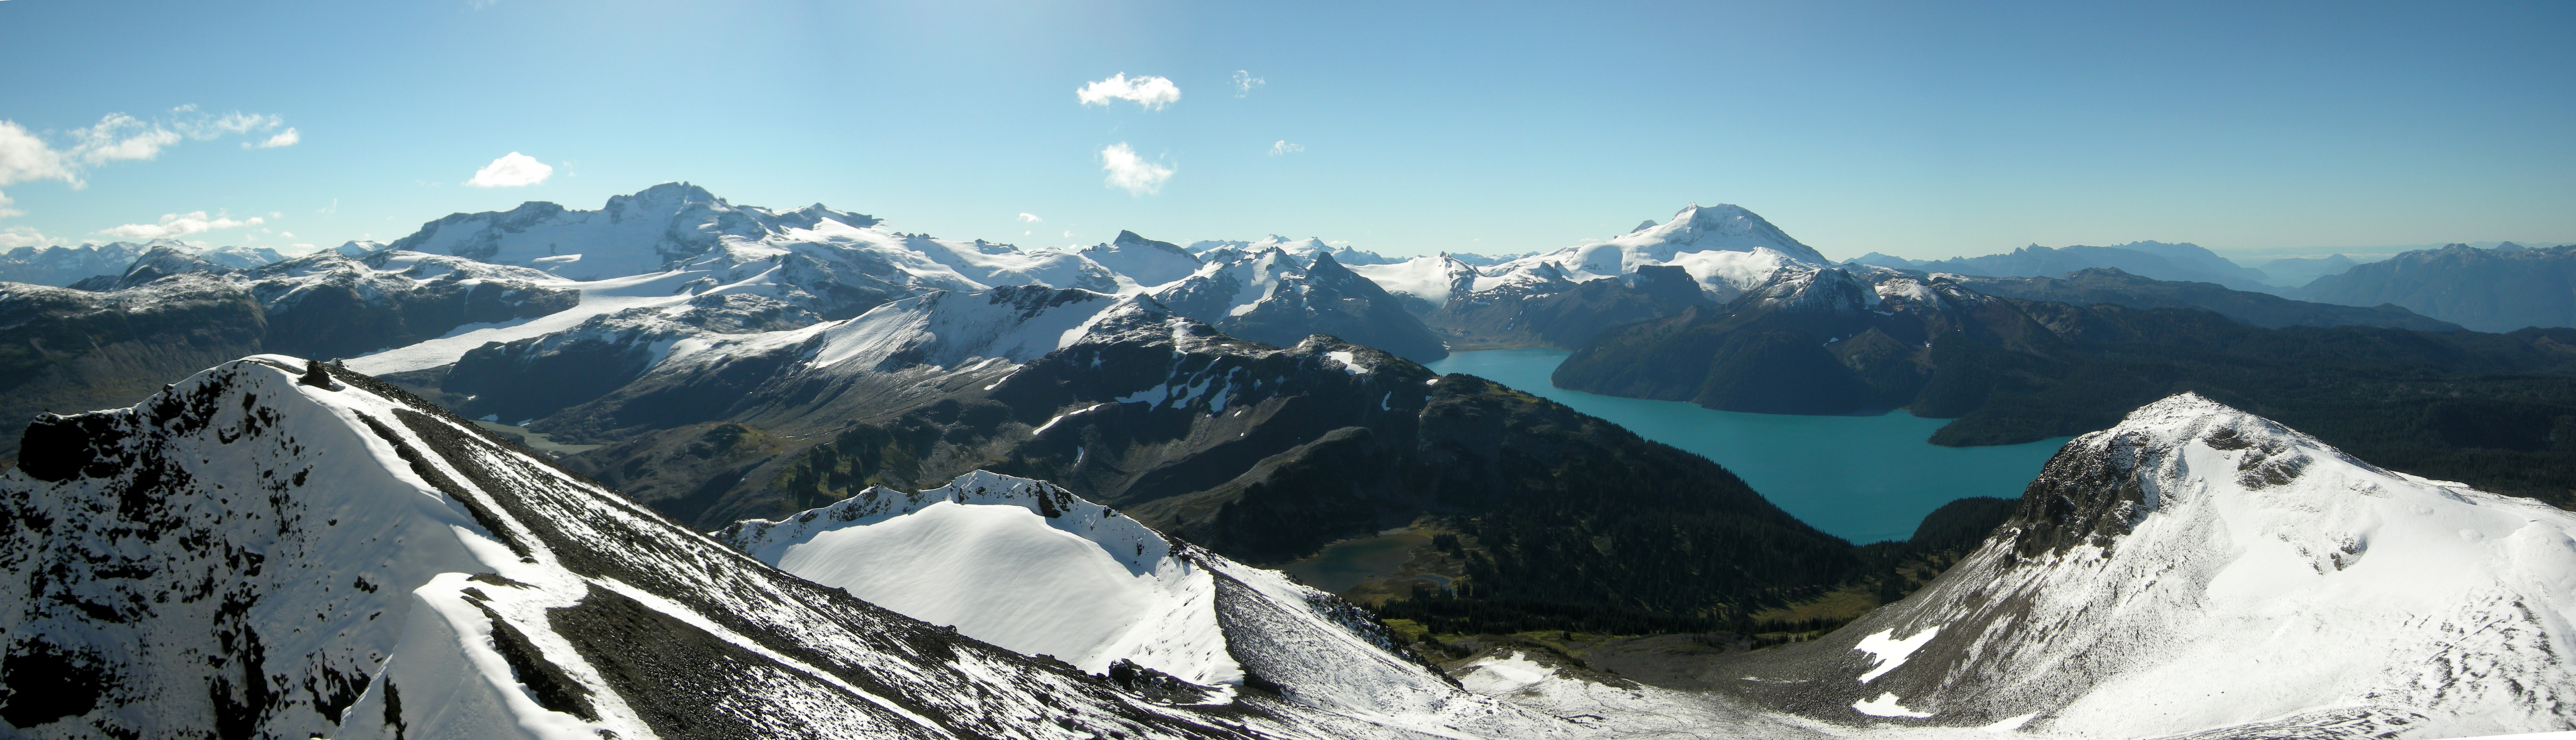 Great views from Black Tusk. photo G. Savard